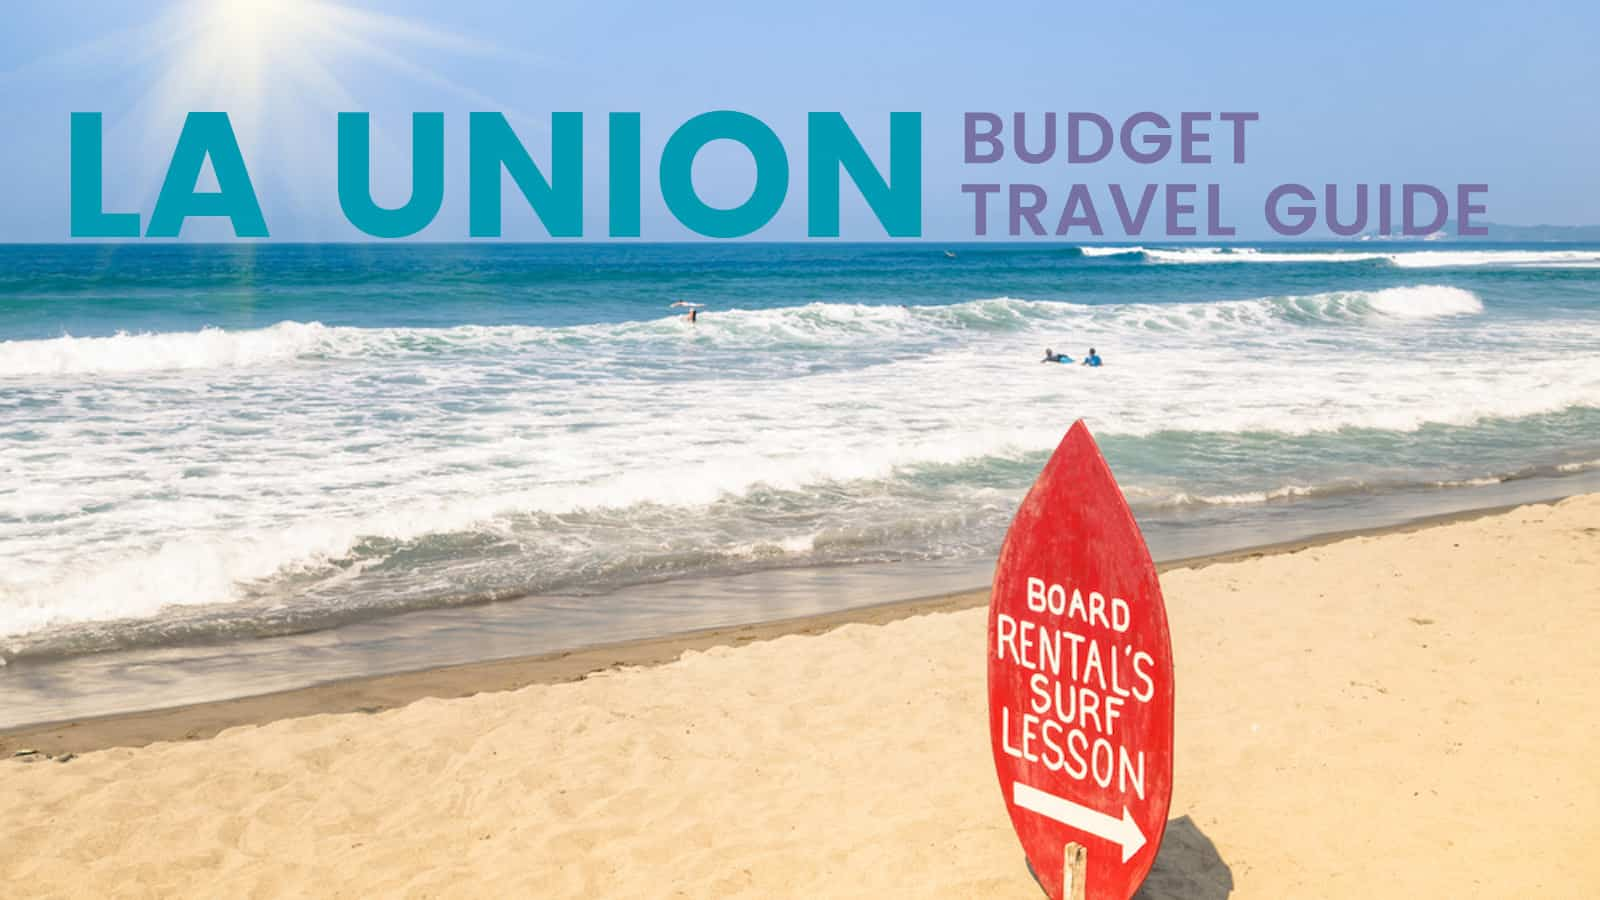 LA UNION ON A BUDGET: Travel Guide & Itinerary